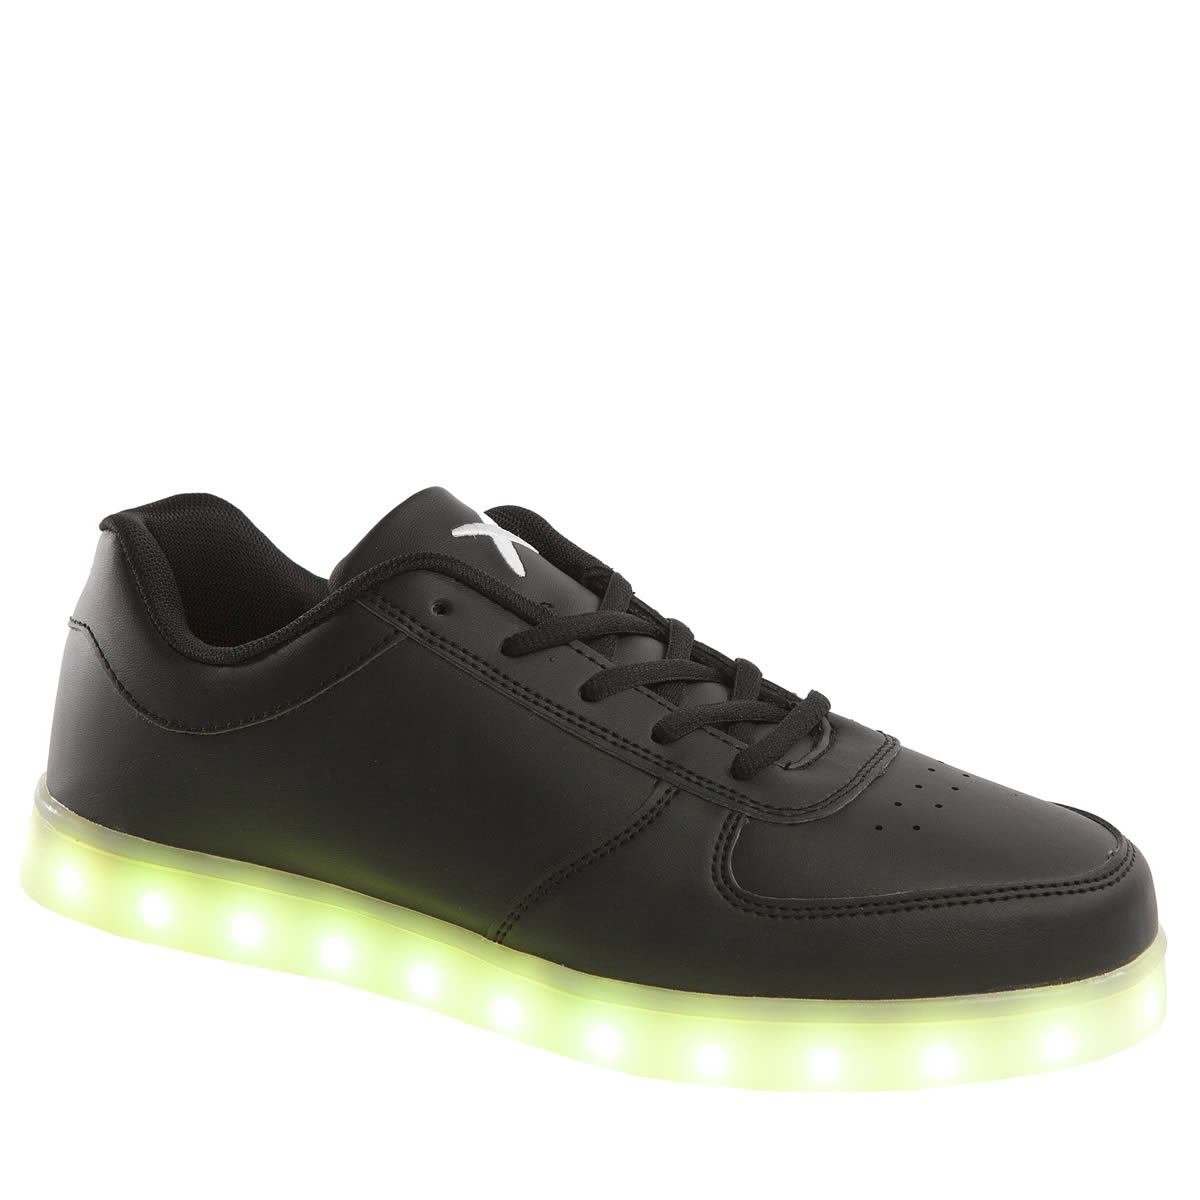 wize & ope Wize & Ope Black The Light Led Trainers